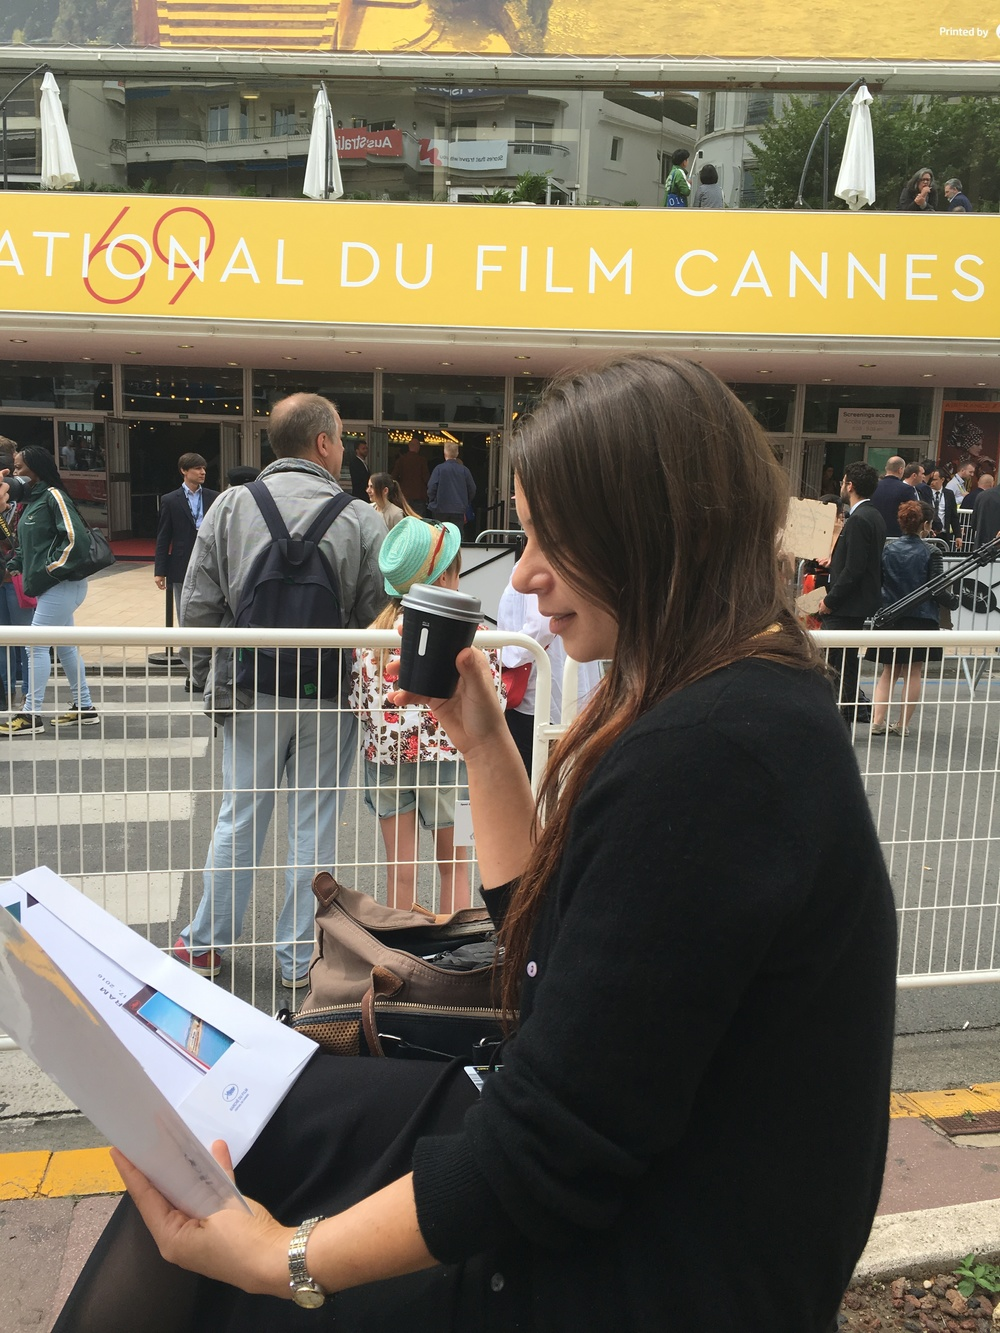 Bex in Cannes!